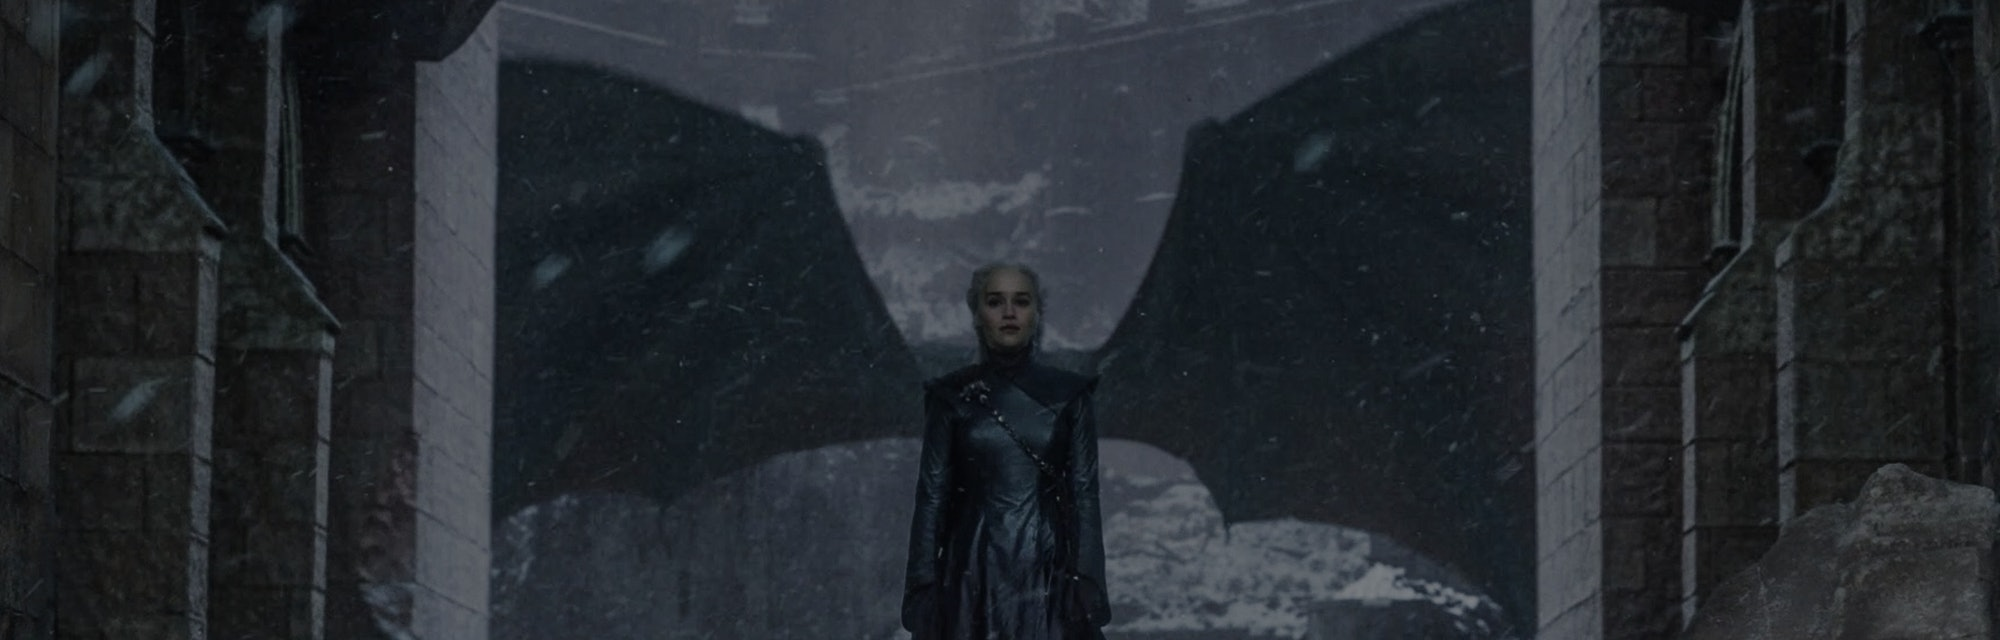 House Of The Dragon Hbo Show Could Fix The Lamest Game Of Thrones Death